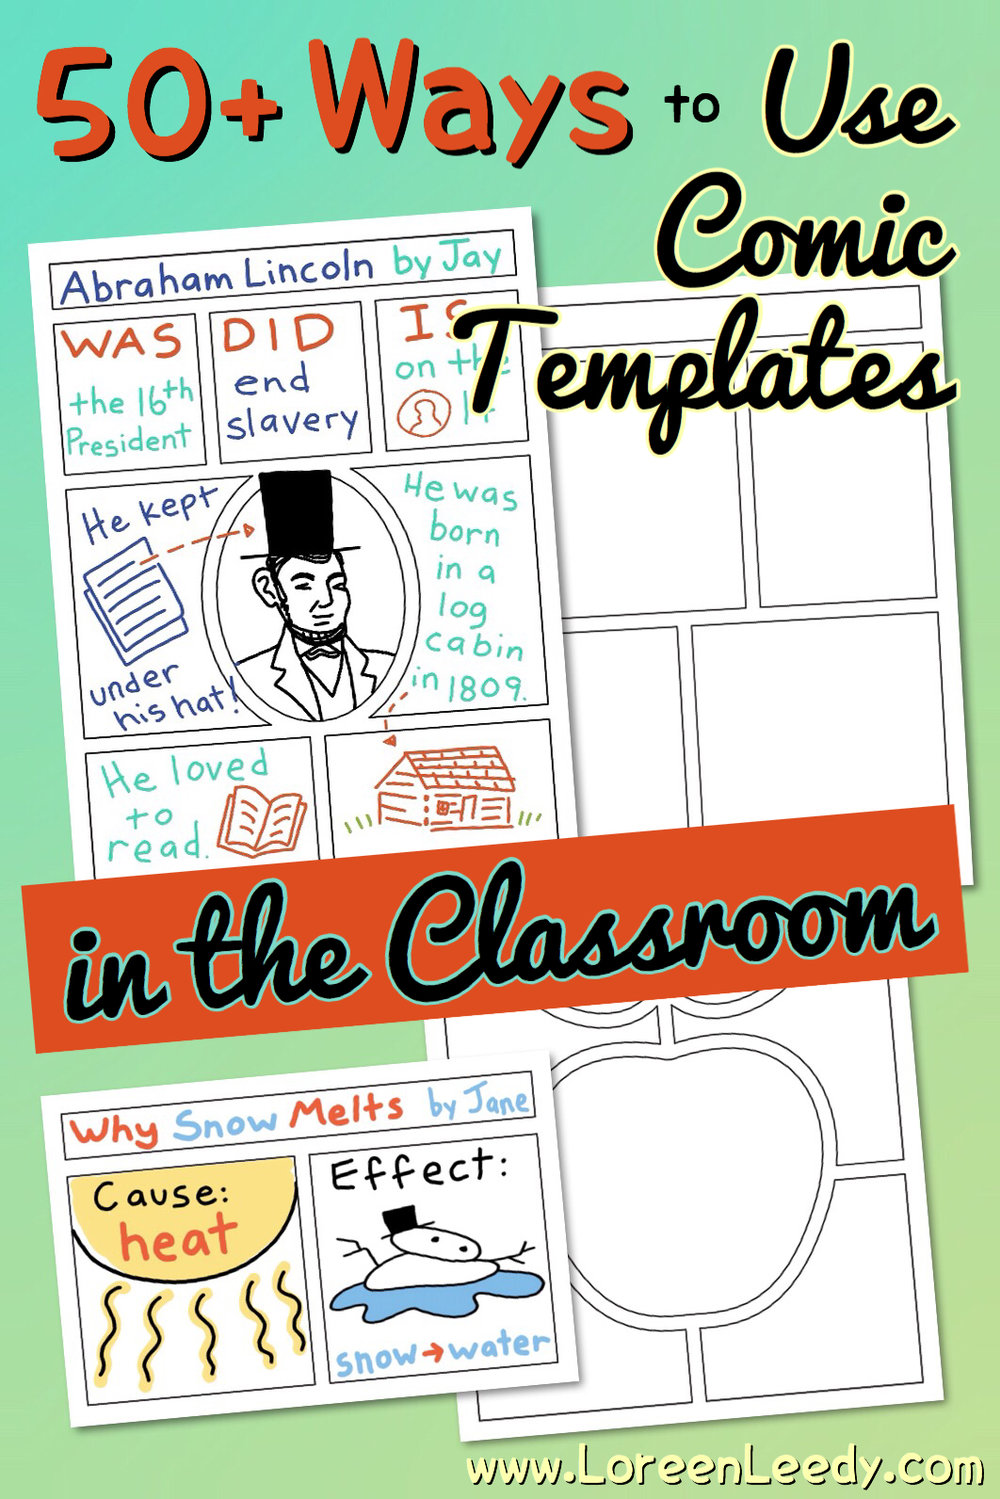 50 ways to use comic templates in the classroom  comic